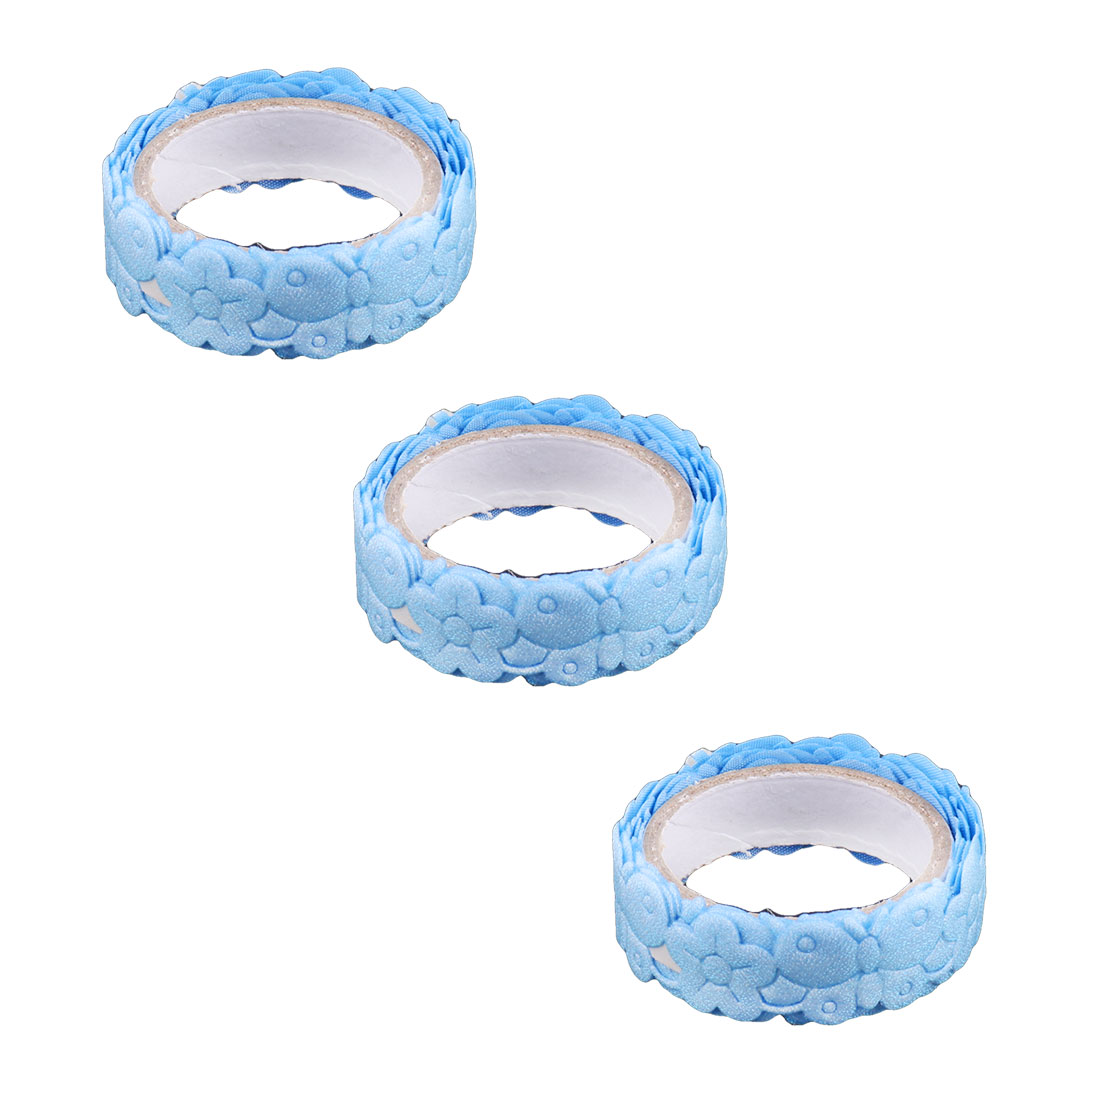 Home Fabric Butterfly Print Craft DIY Adhesive Washi Masking Tape Roll Blue 3pcs